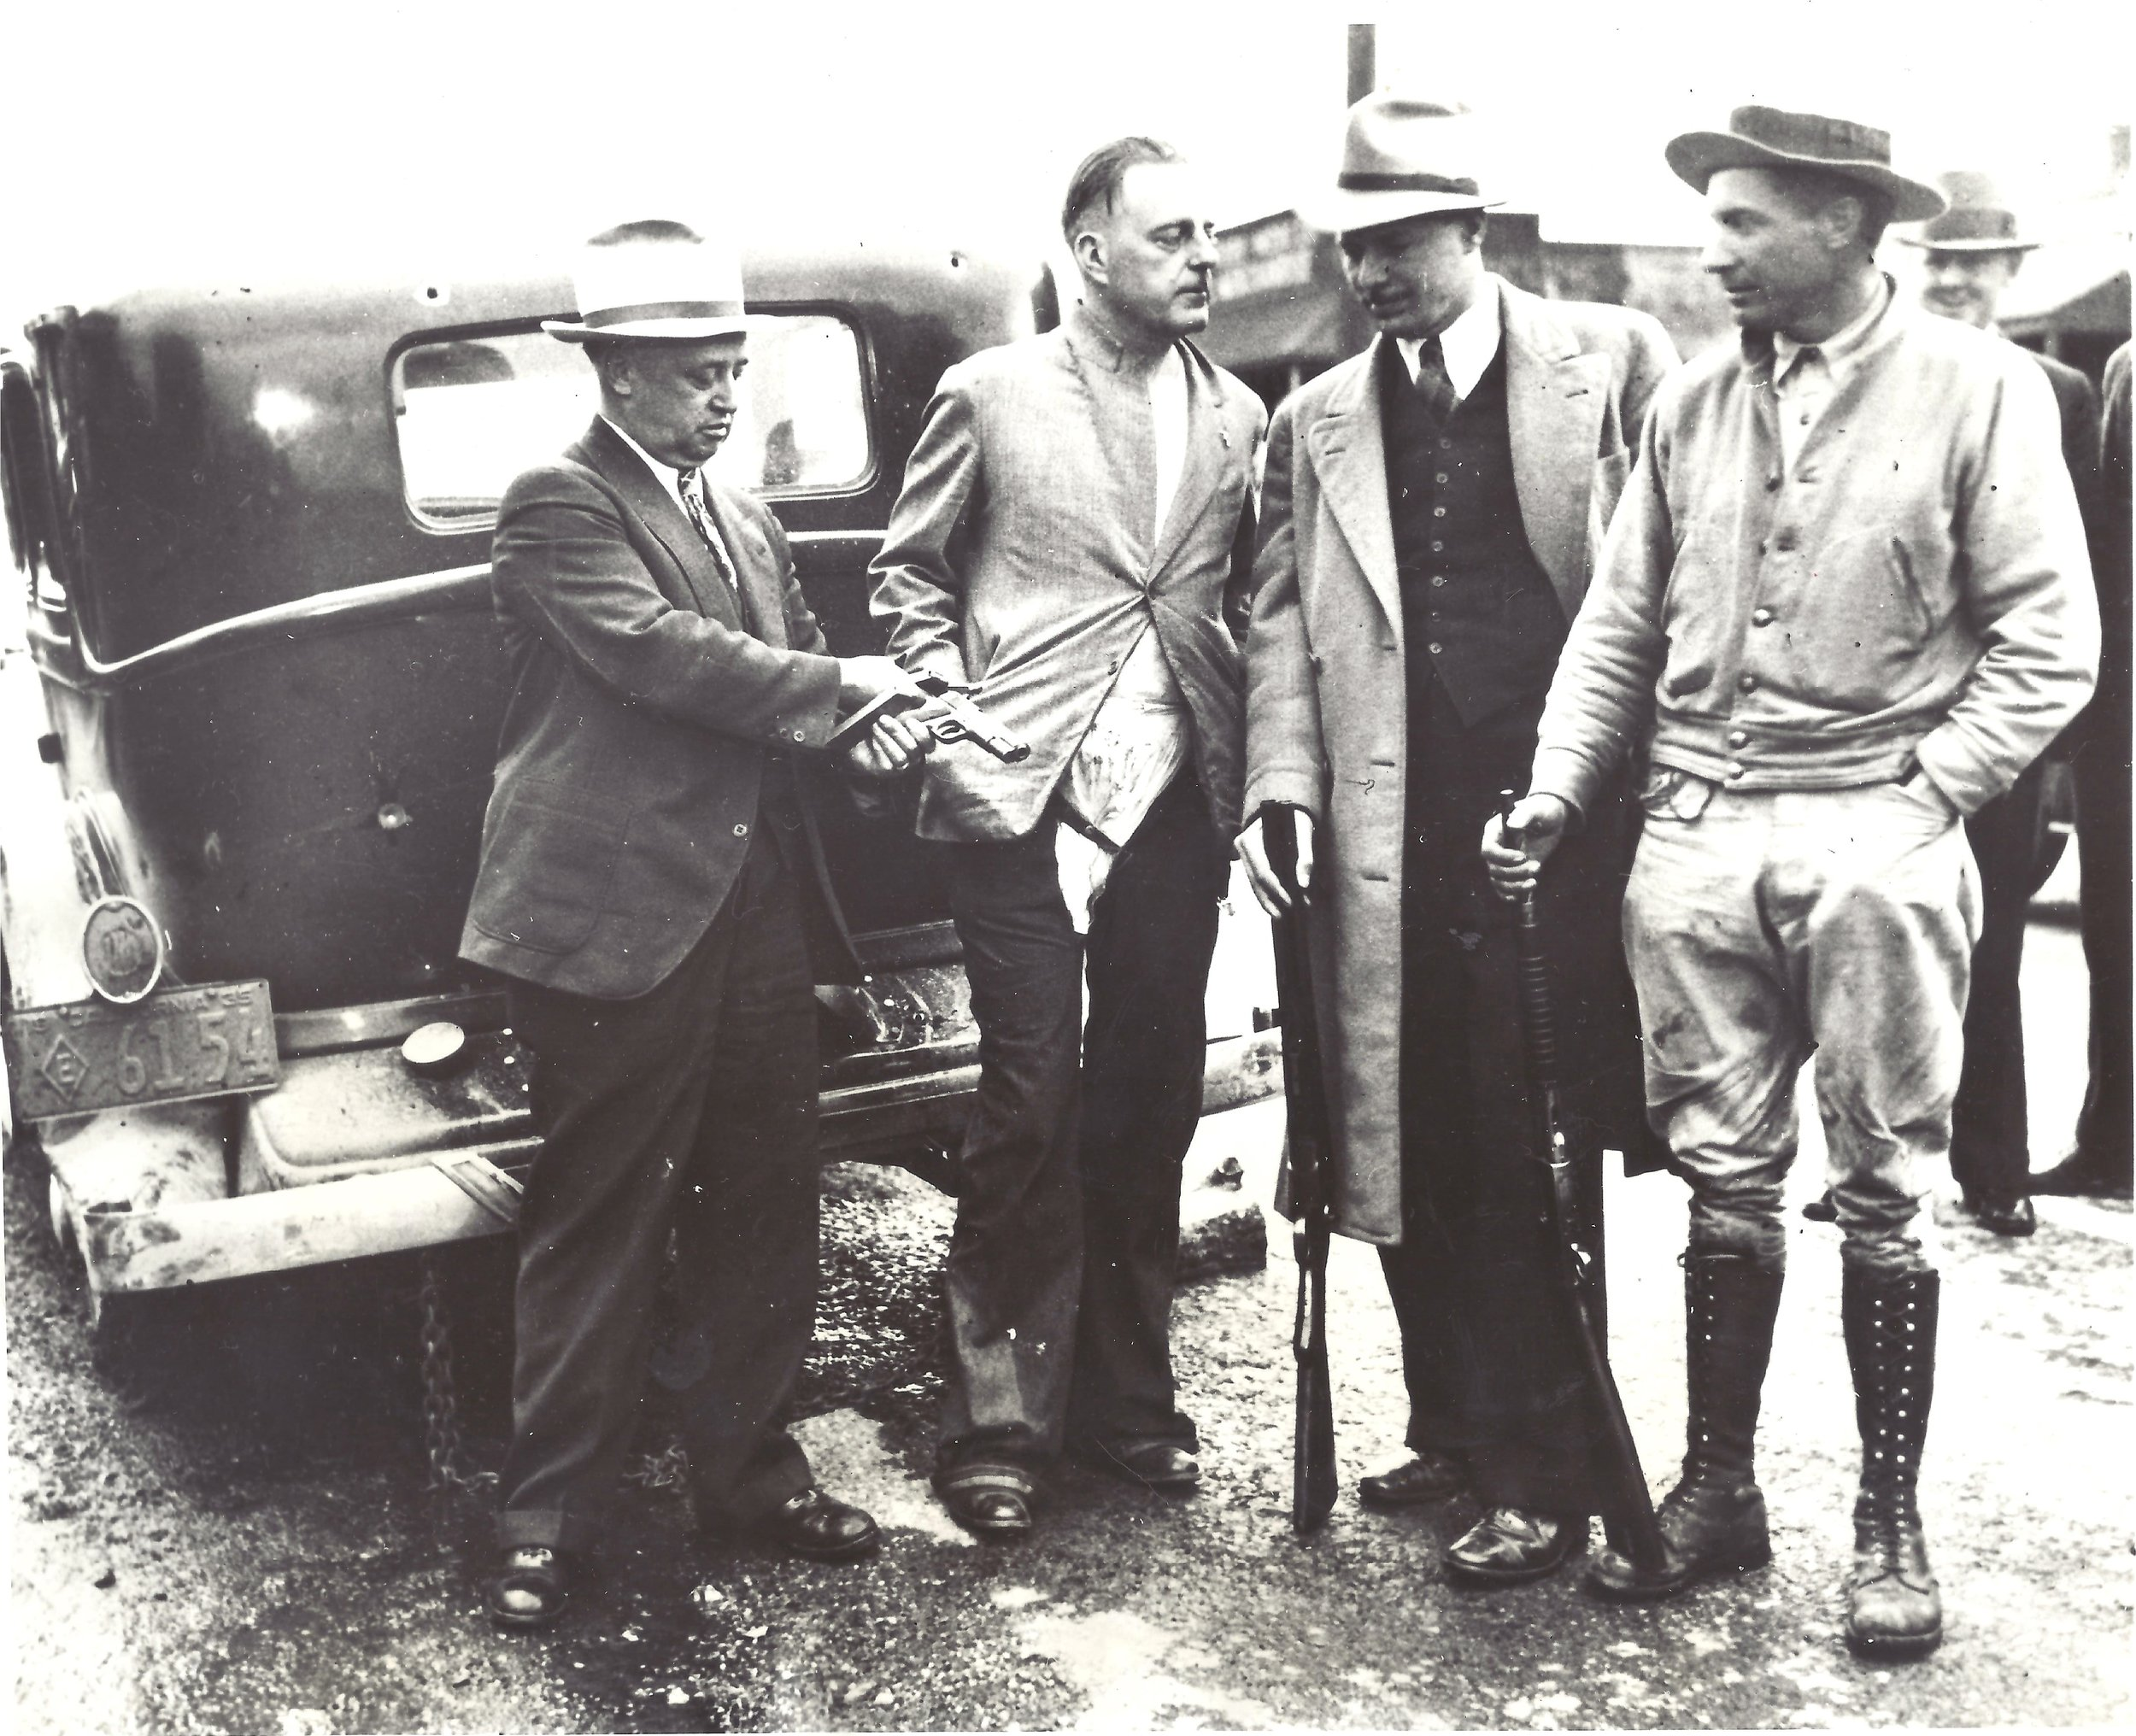 The first photo shows (left to right) Marin Undersheriff Ed Blum, examining one of the convict's guns, Parole Board member Warren Atherton, who had been forced to change clothes with one of the convicts, Marin County District Attorney Al Bagshaw, holding the sawed-off shotgun he used to slay convict Rudolph Straight, and finally Constable John Bones, holding the rifle he used to shoot out the tire to the getaway car.  Note the bullet holes in the back of the warden's vehicle.